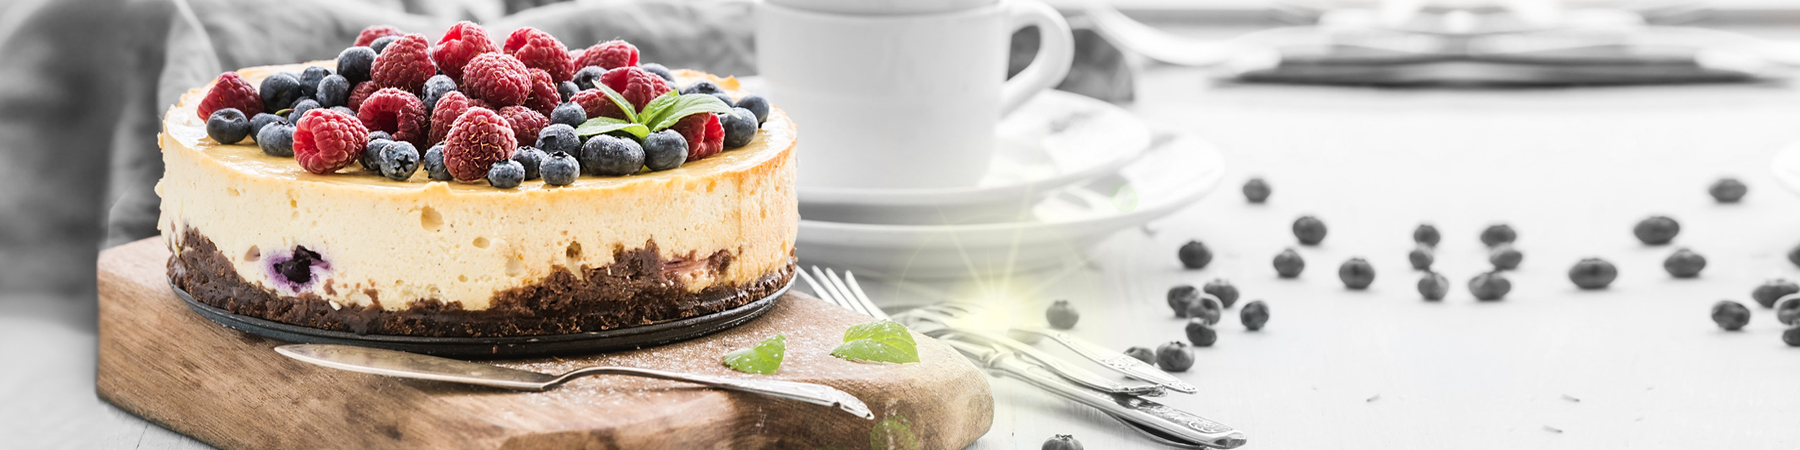 Cheesecake with fresh raspberries and blueberries on a wooden serving board, plates, cups, kitchen napkin, silverware over blue background, window at the backdrop